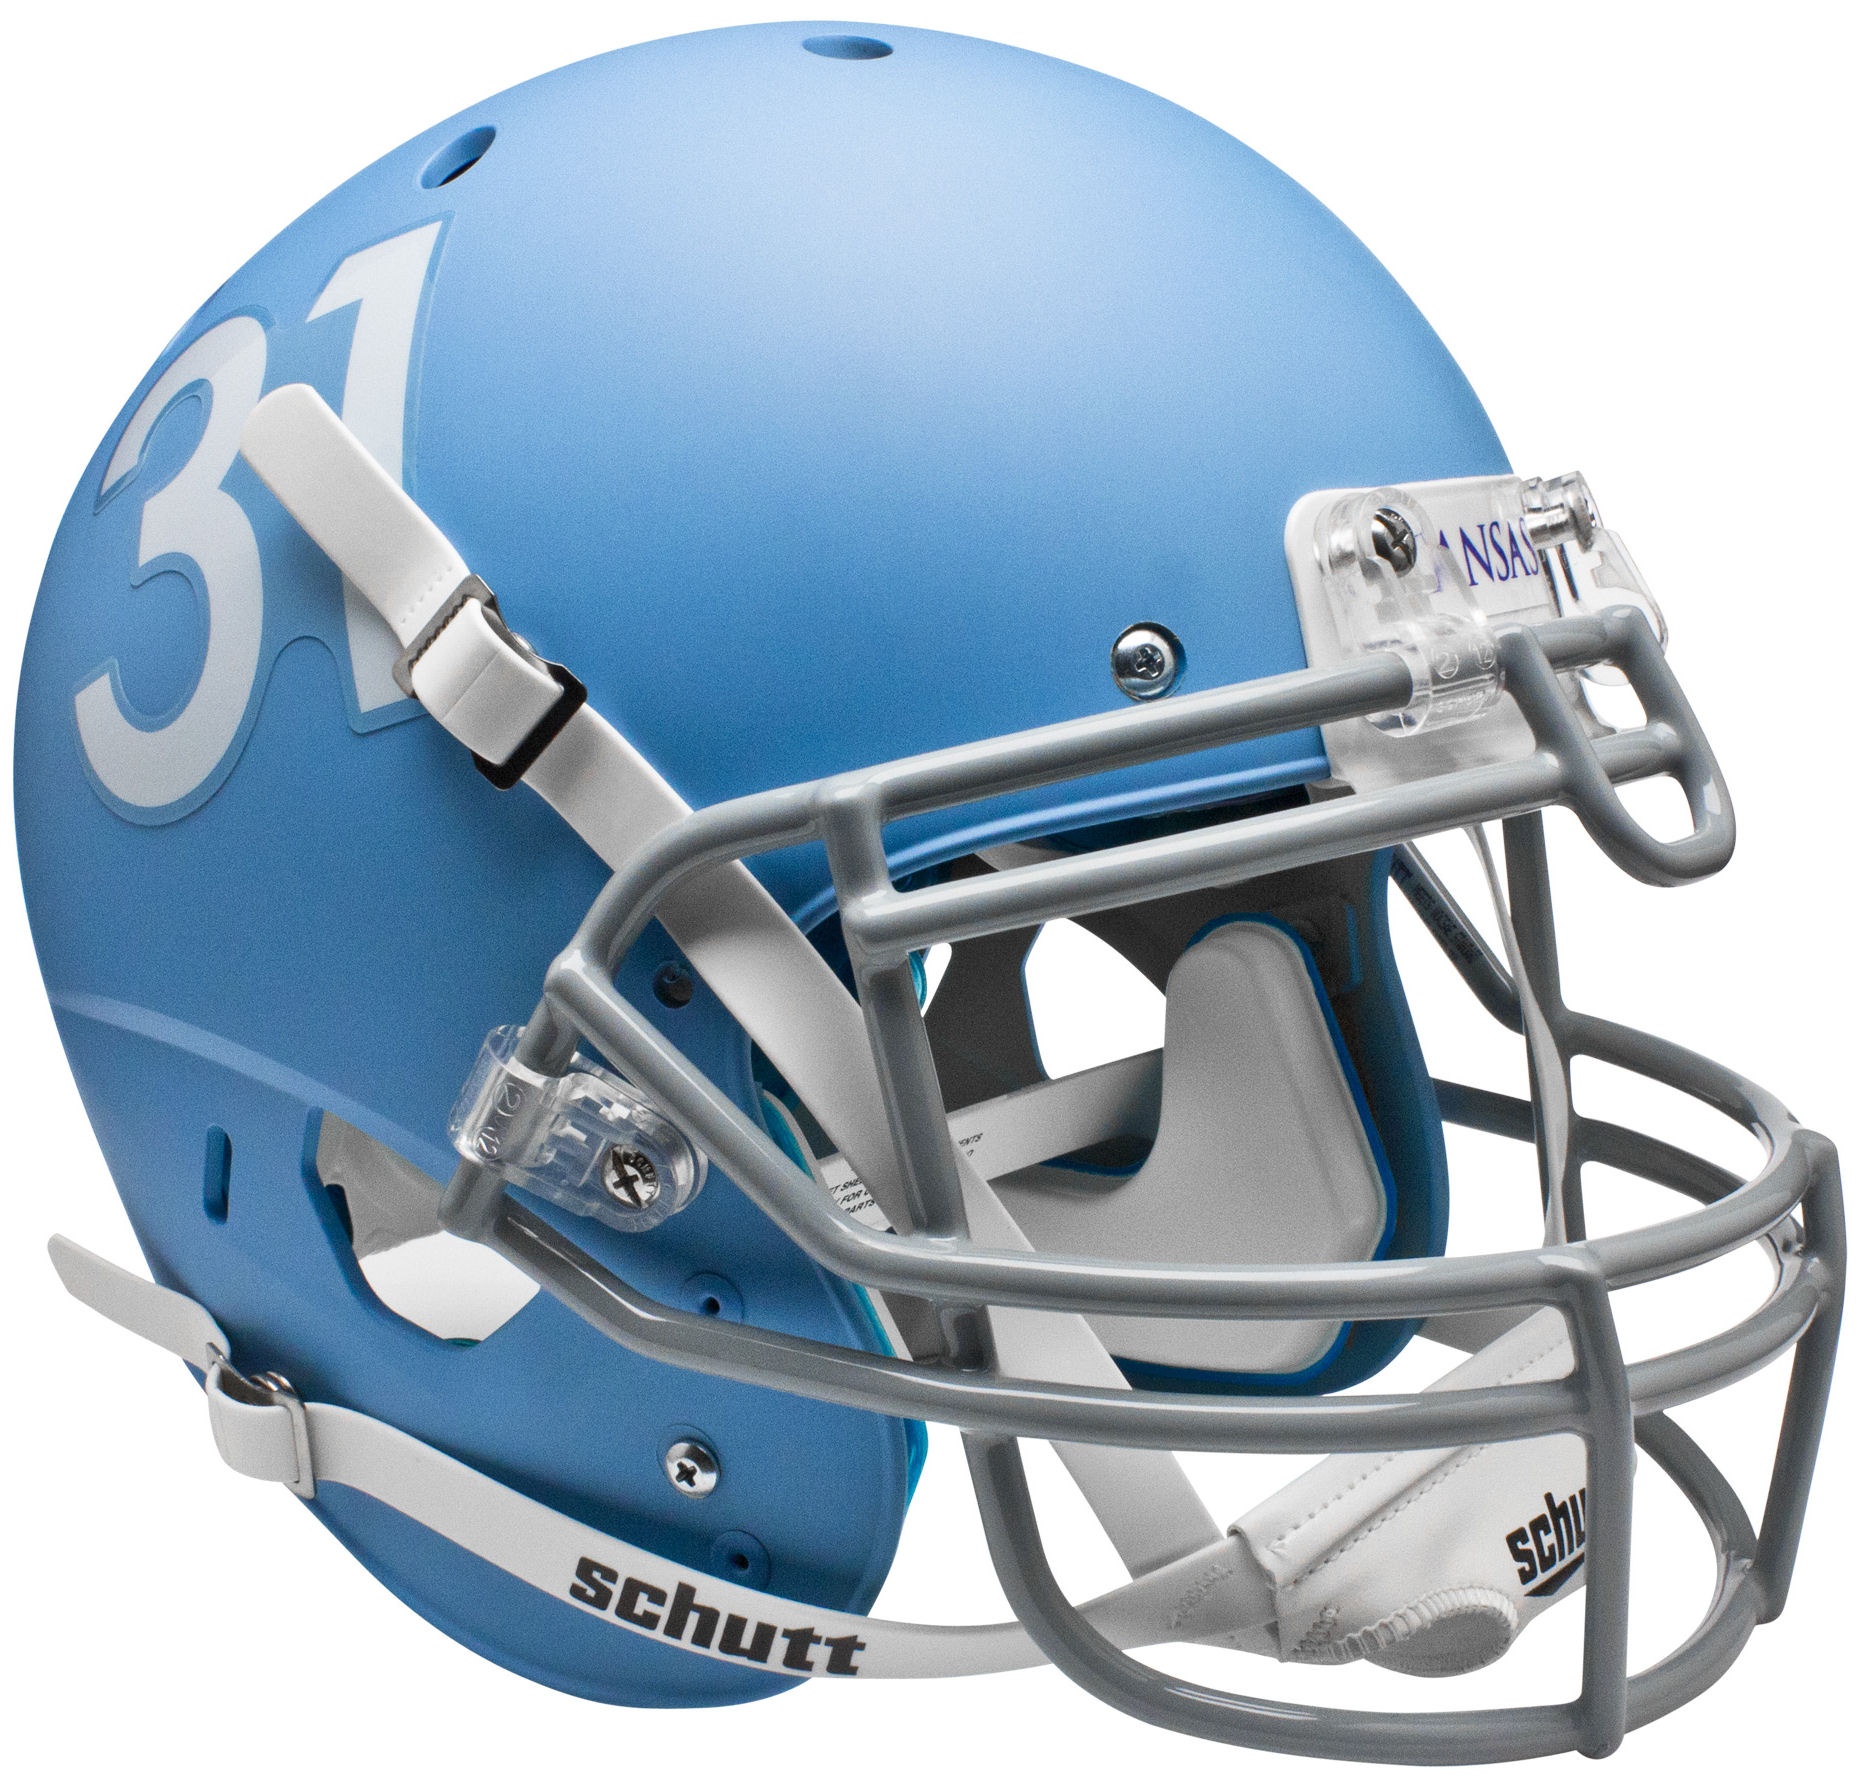 Kansas Jayhawks Authentic College XP Football Helmet Schutt <B>Matte Columbia Blue</B>